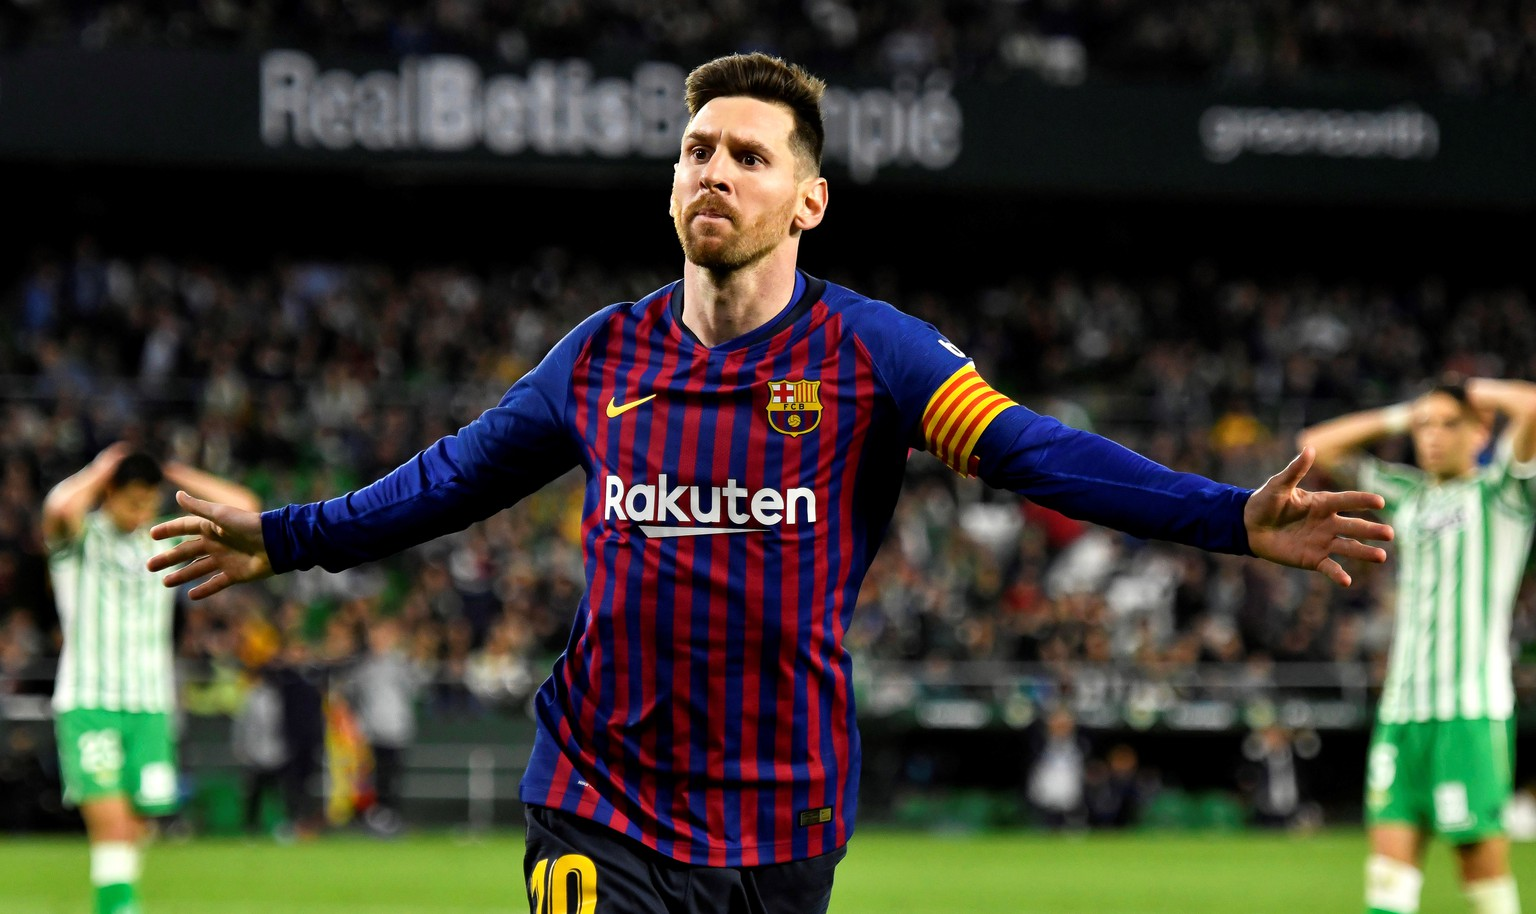 epa07446018 FC Barcelona's Lionel Messi celebrates after scoring the 4-1 lead during the Spanish La Liga soccer match between Real Betis and FC Barcelona in Seville, southern Spain, 17 March 2019.  EPA/RAUL CARO